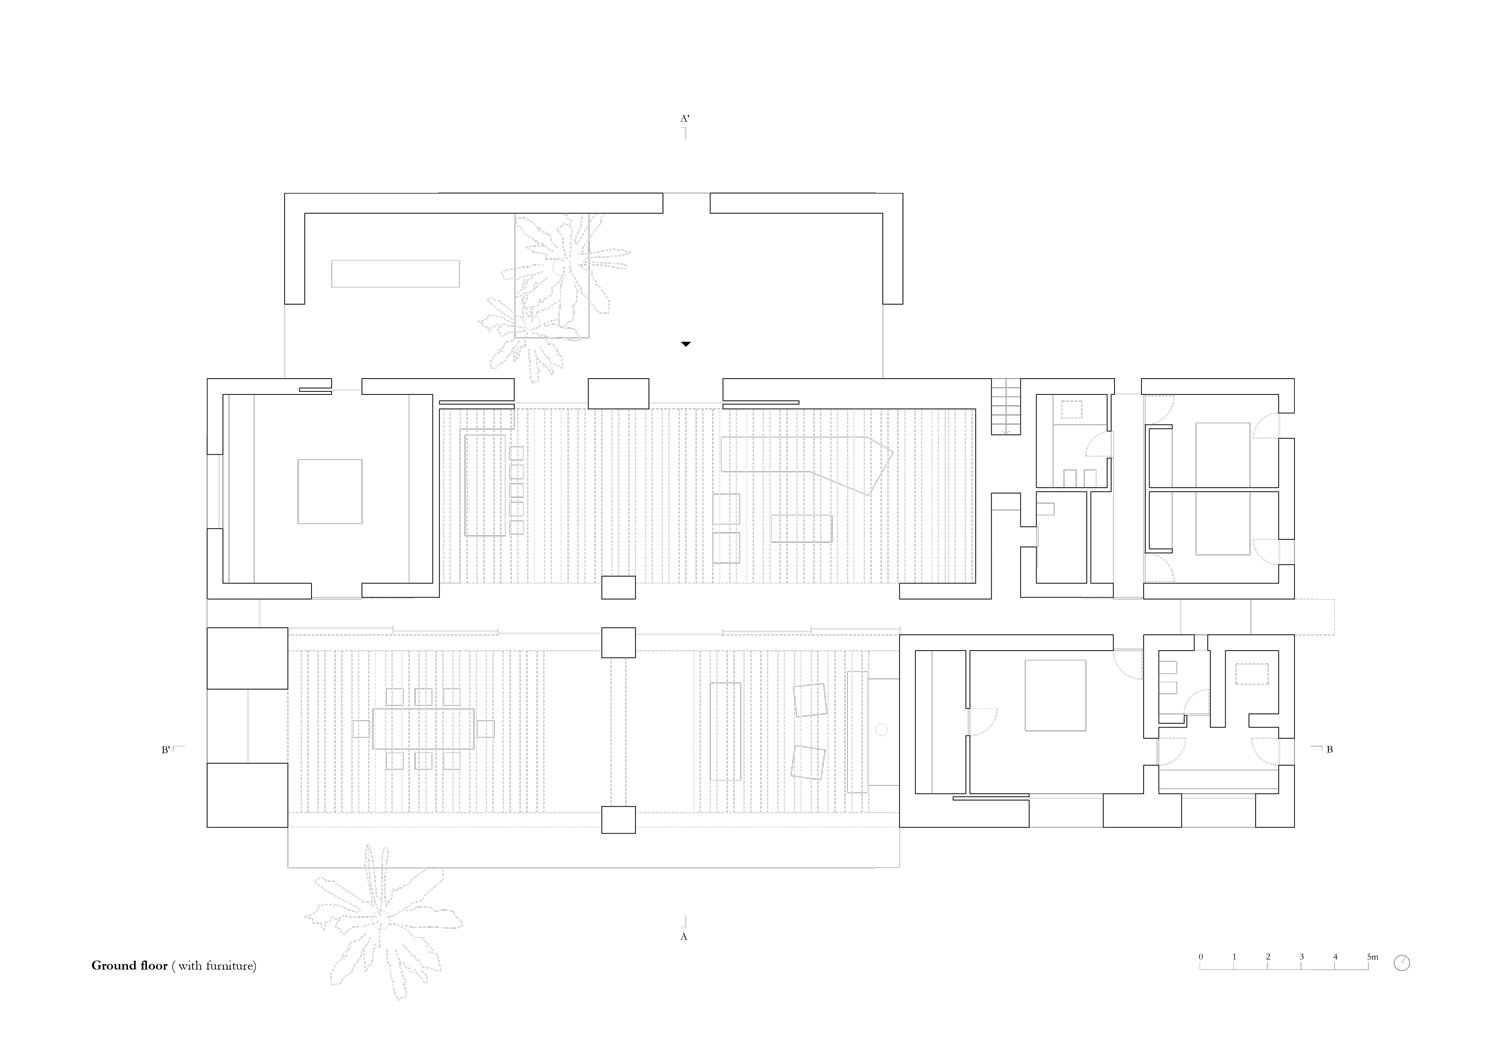 Plan ground floor with furniture MORQ}